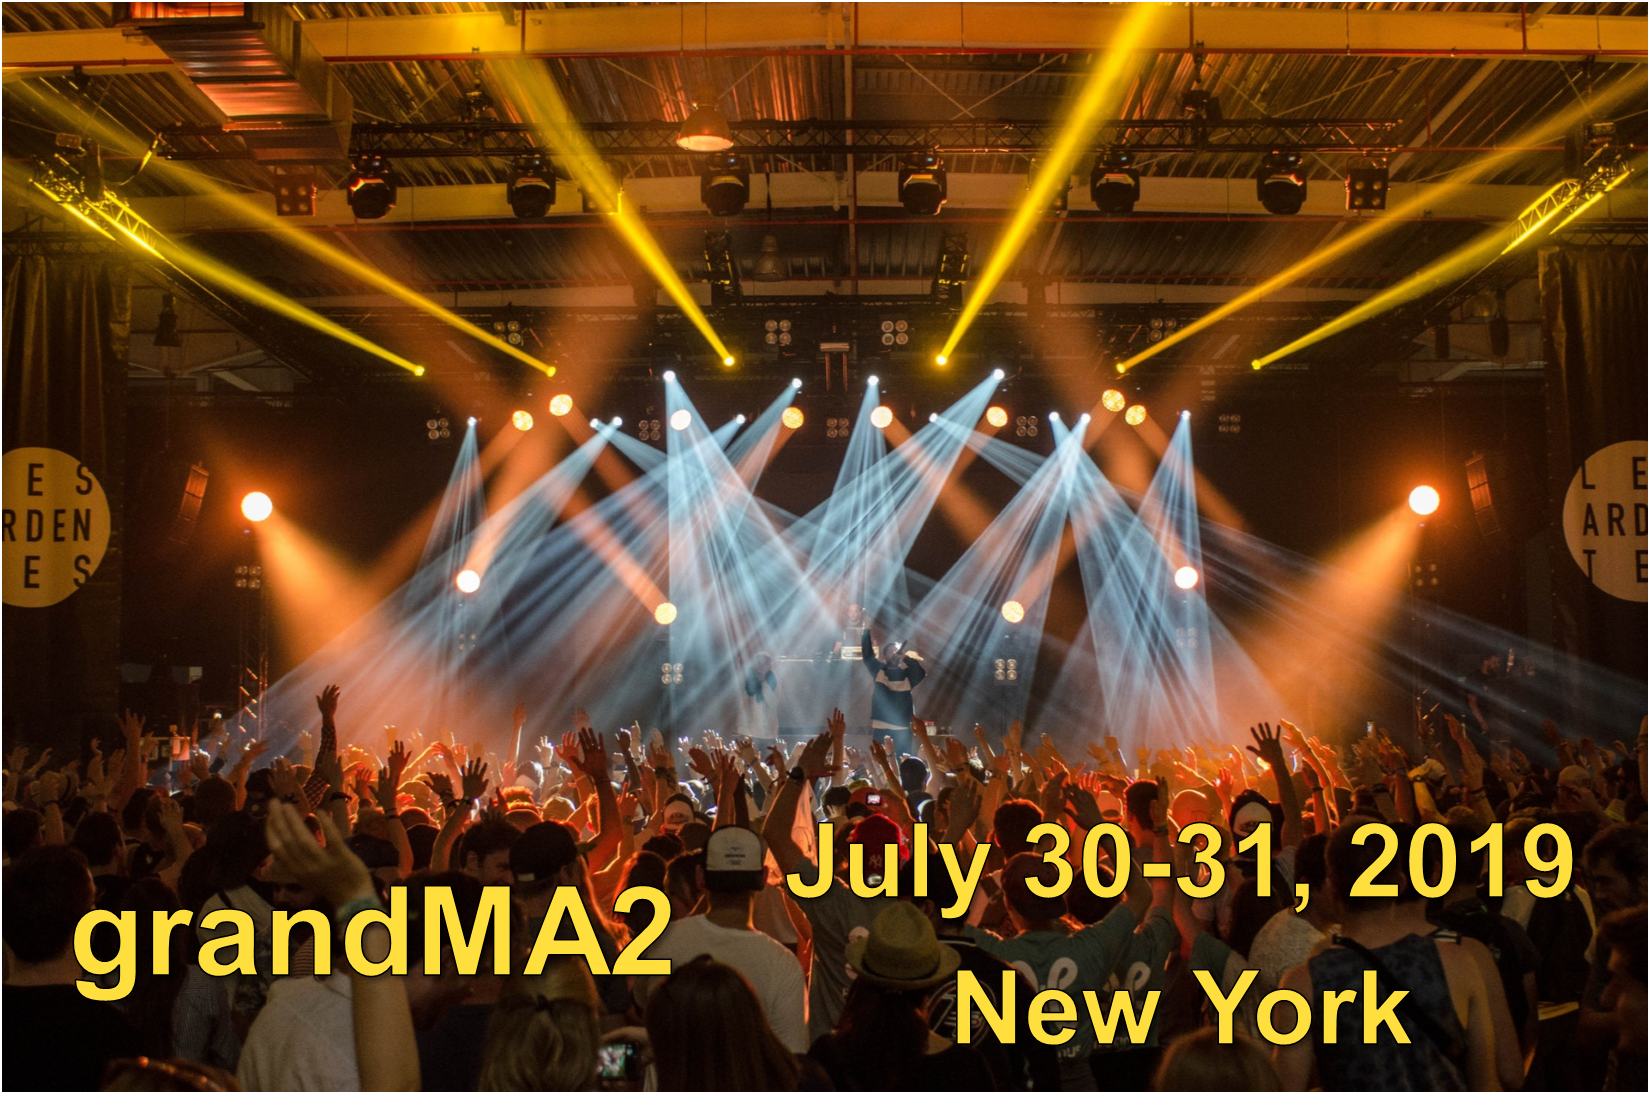 grandMA2 Class - July 30-31, 2019 - New York - SOLD OUT